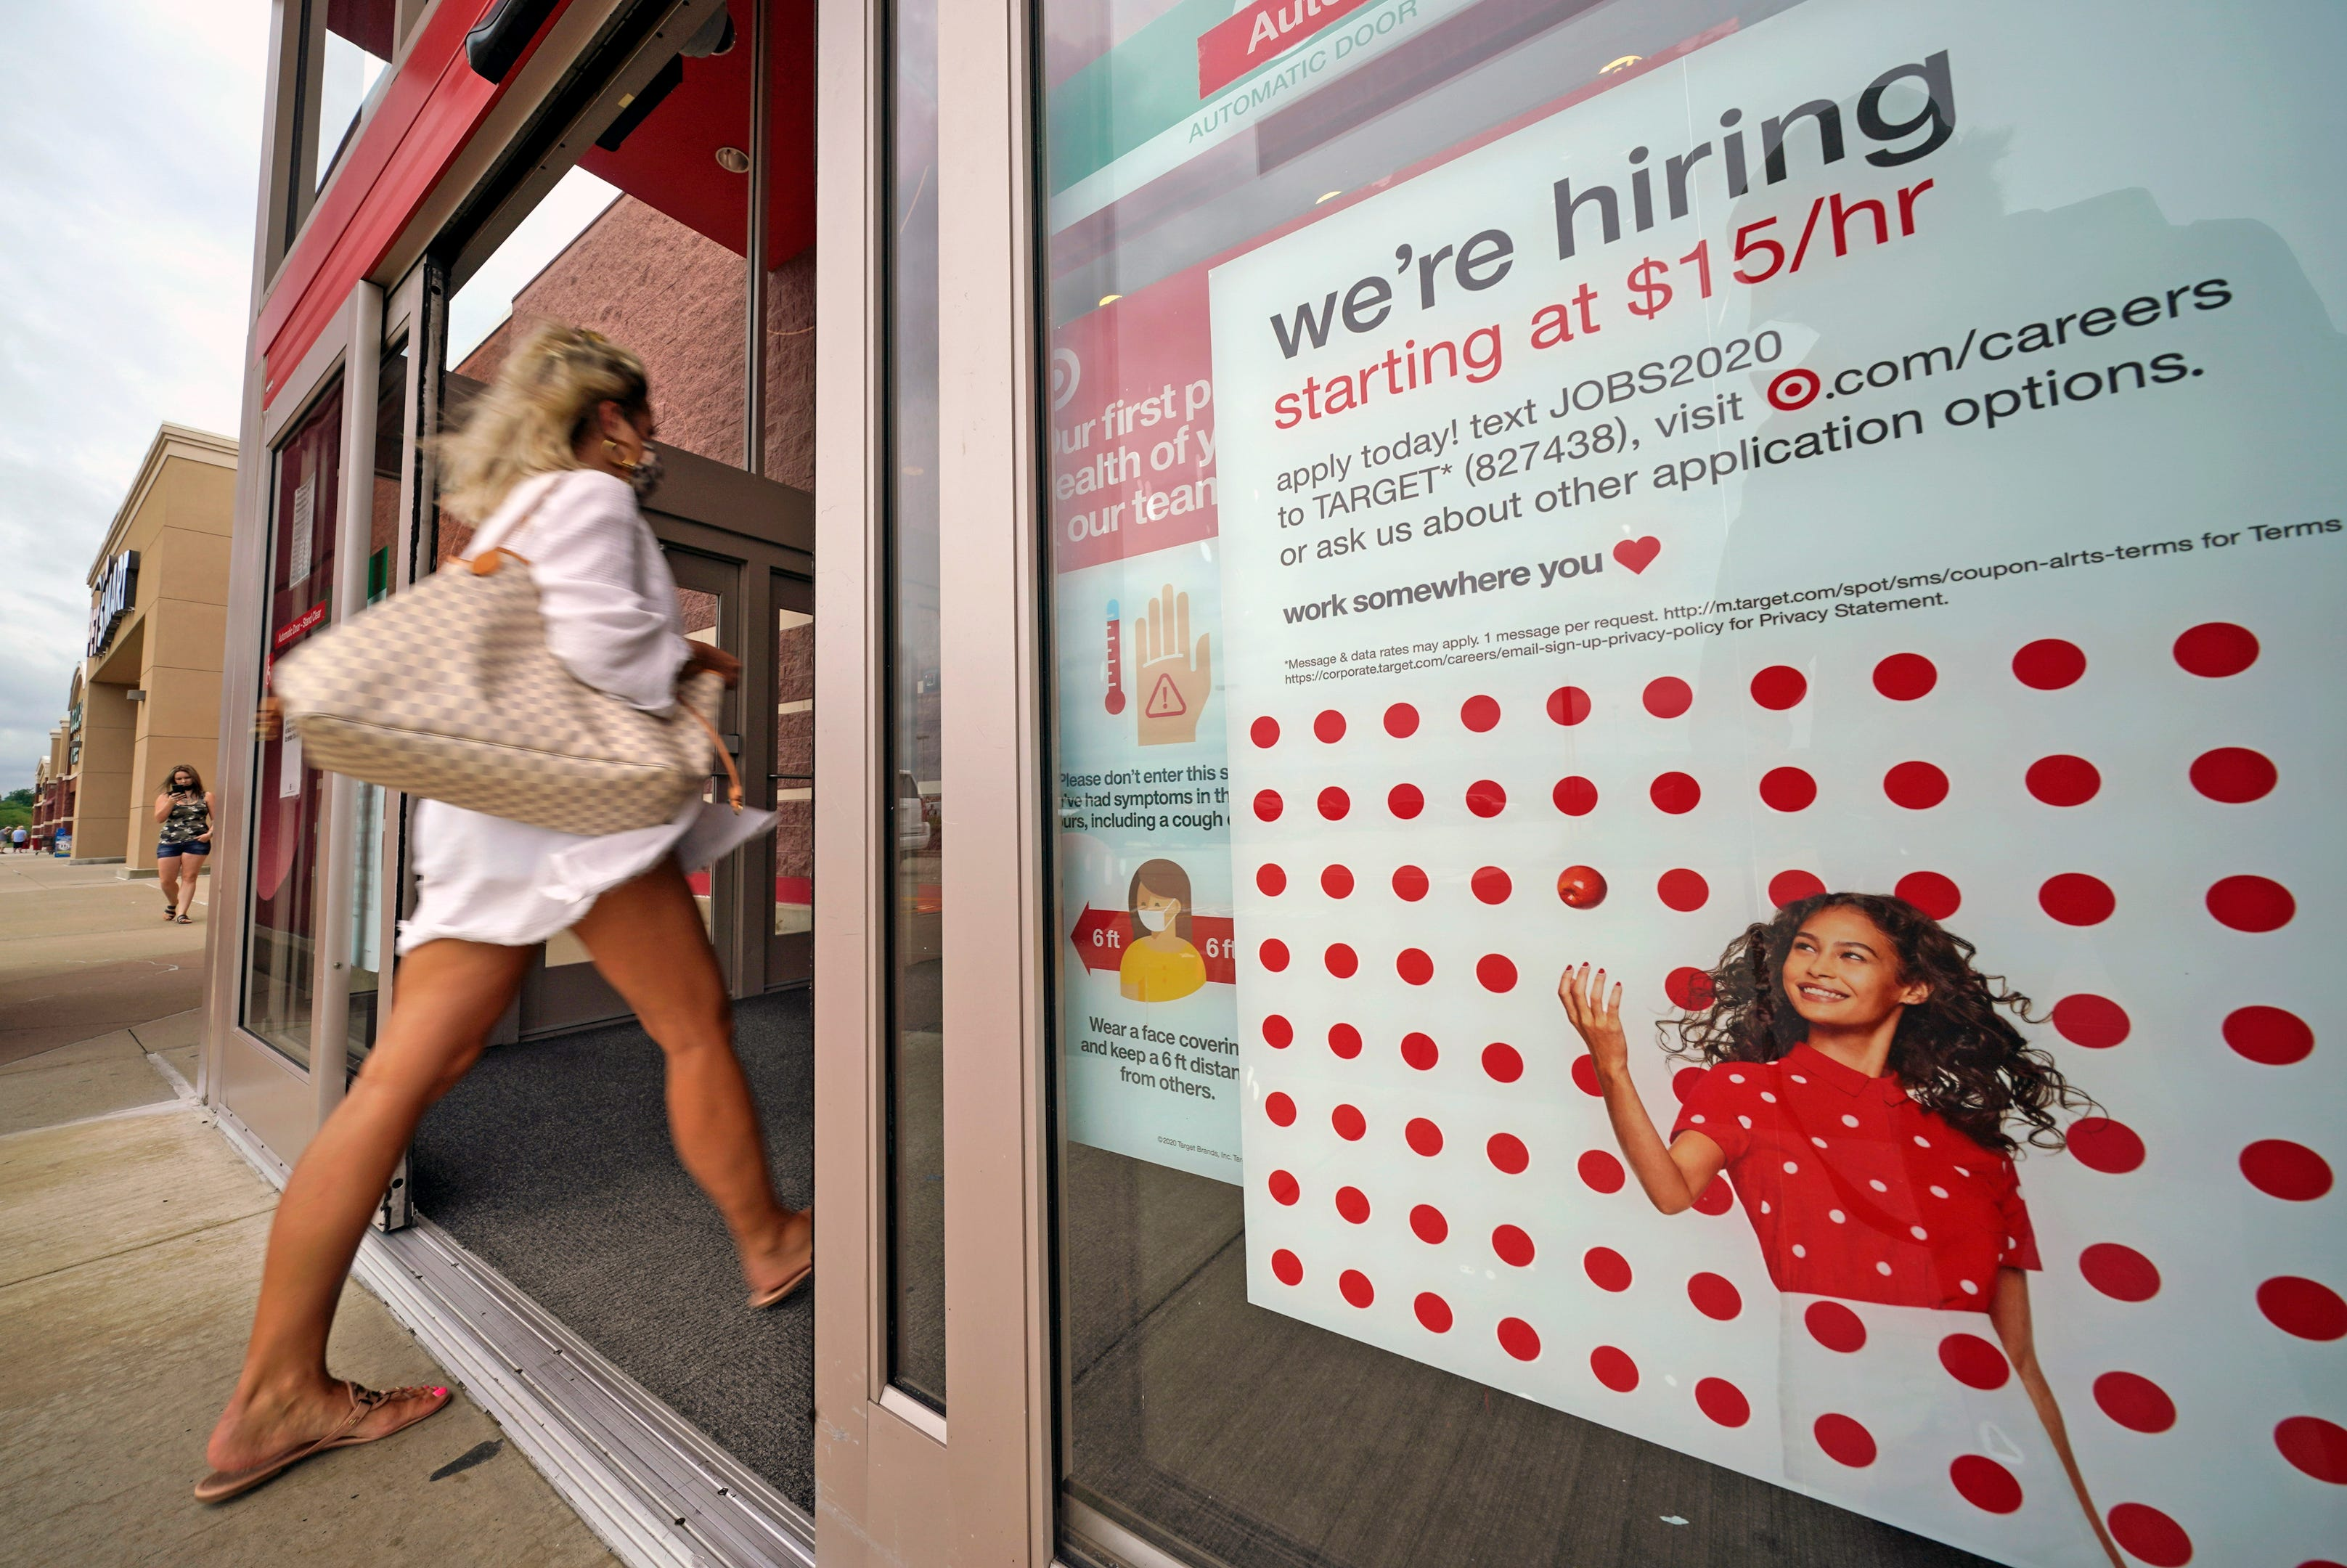 US jobless claims plunge to 576,000, lowest since pandemic 1